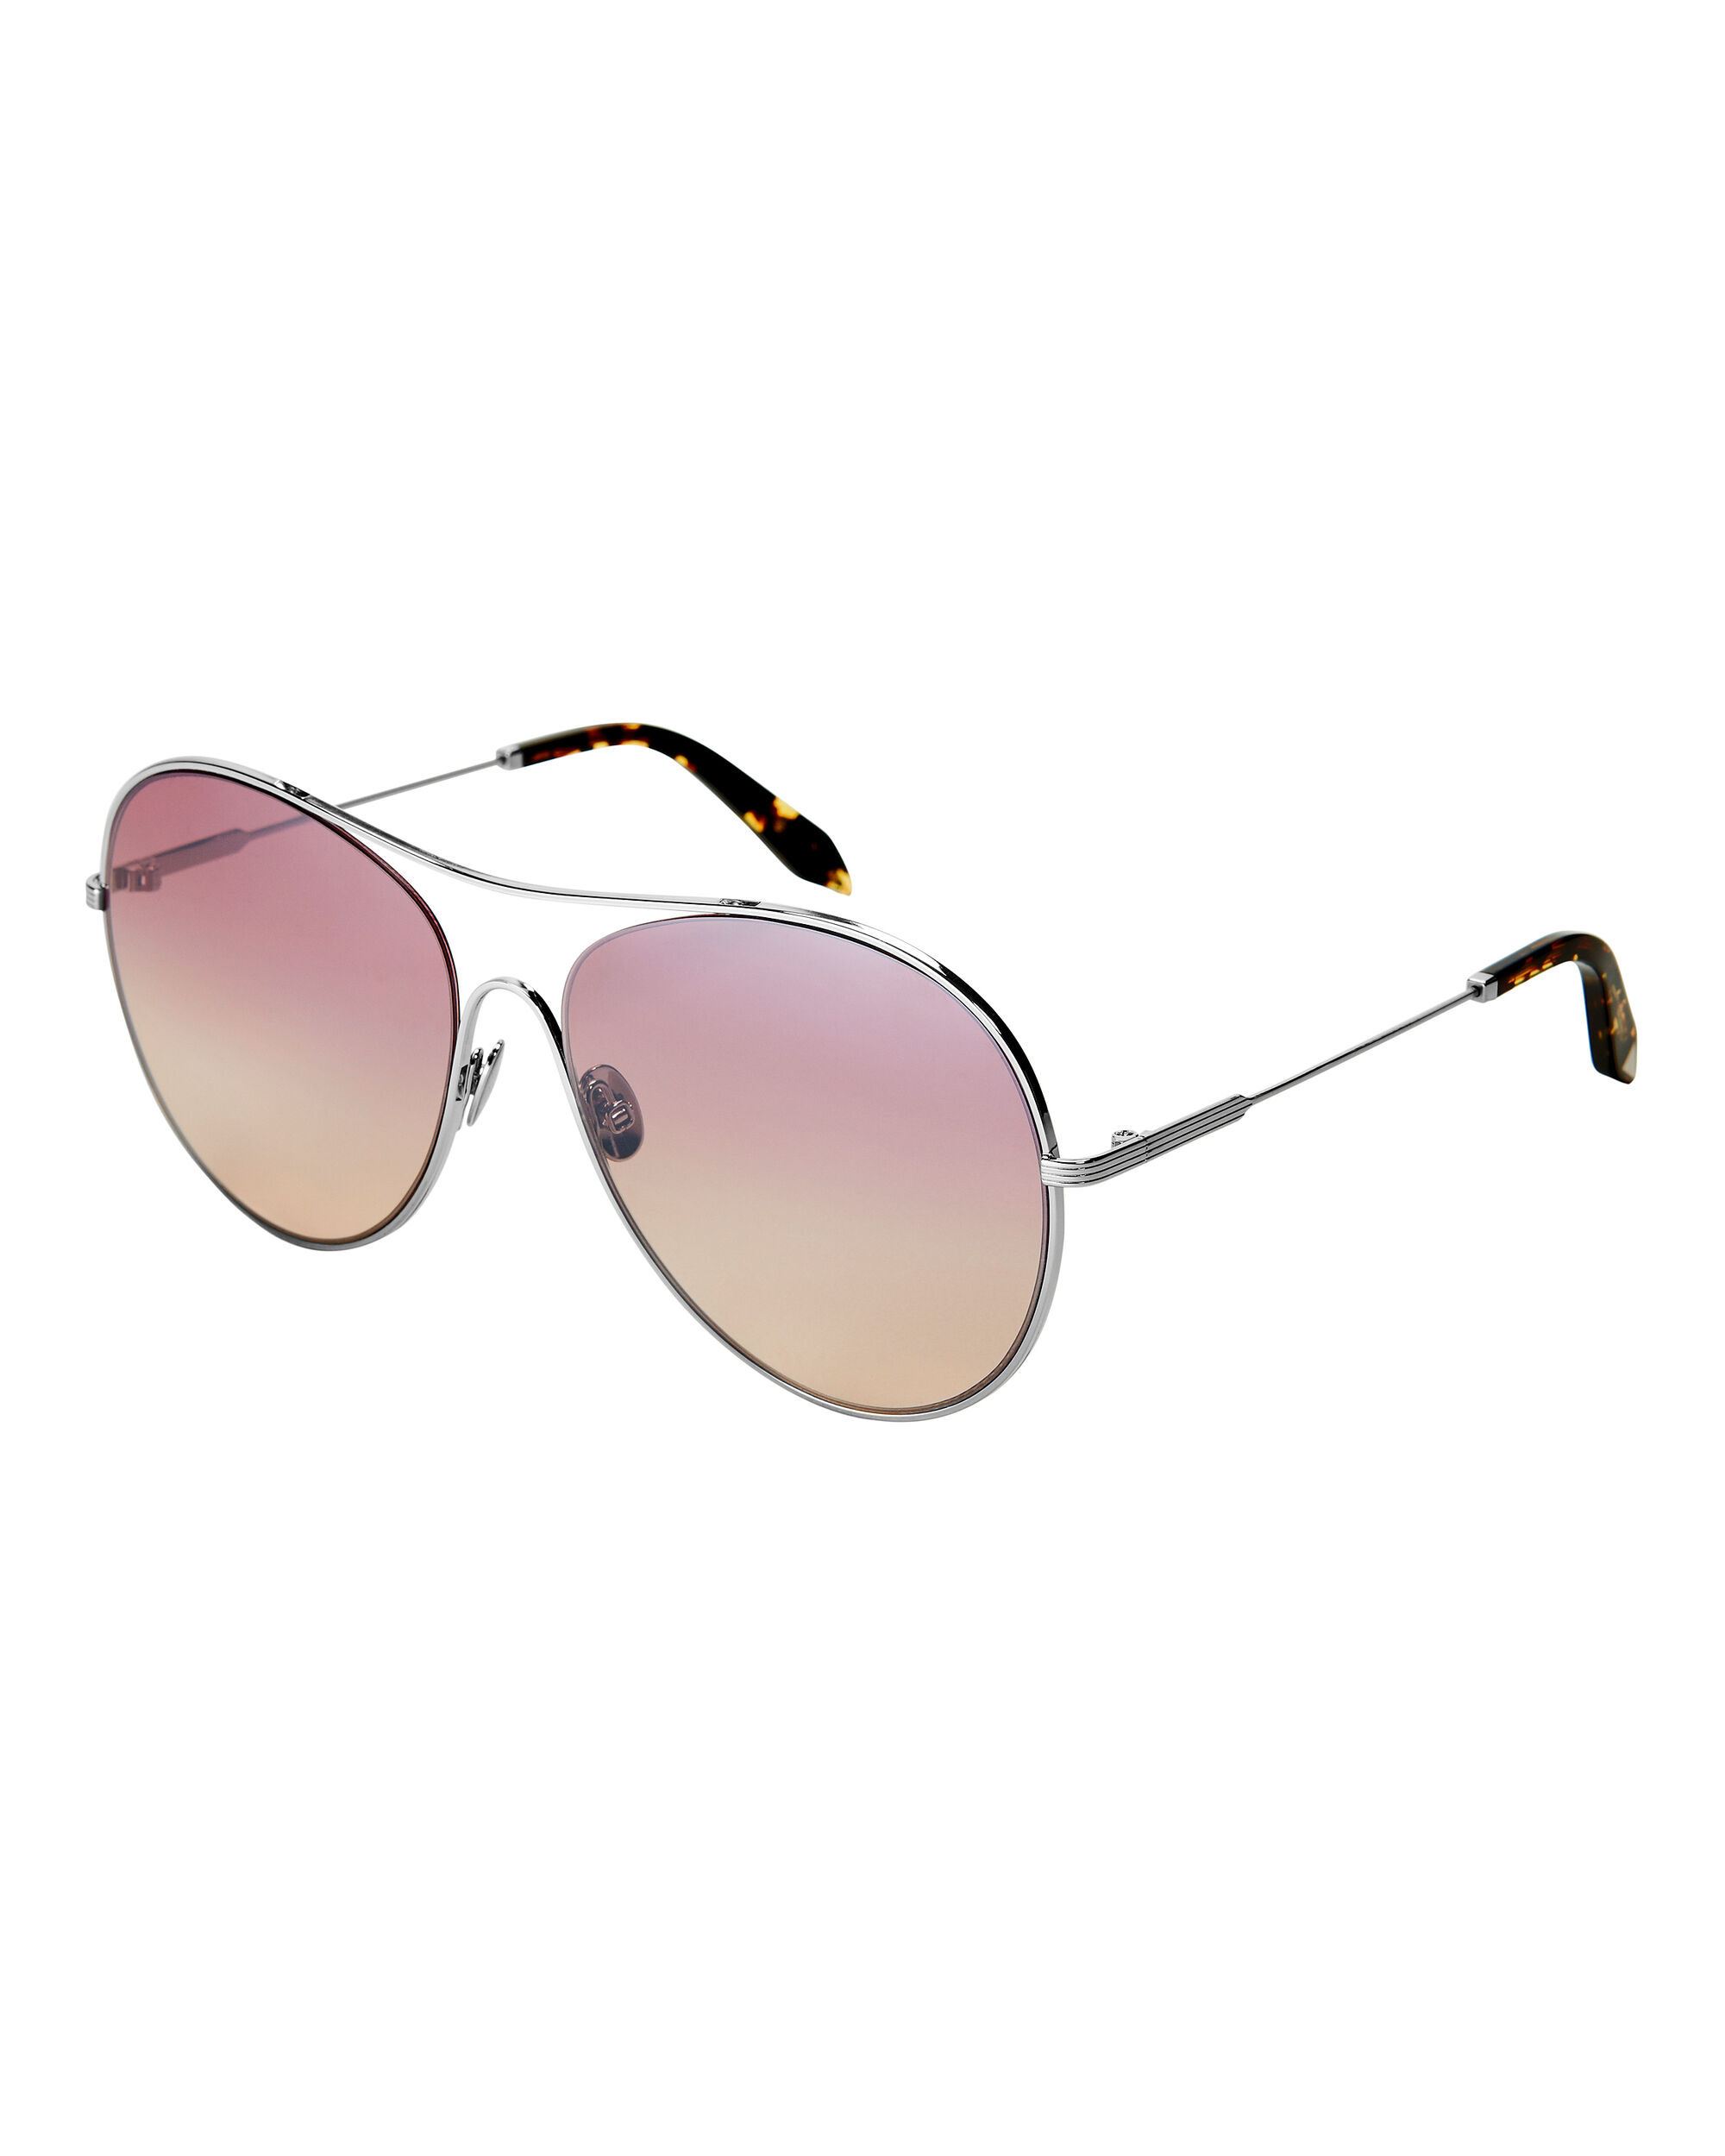 Gold Loop Round Sunglasses, GOLD, hi-res